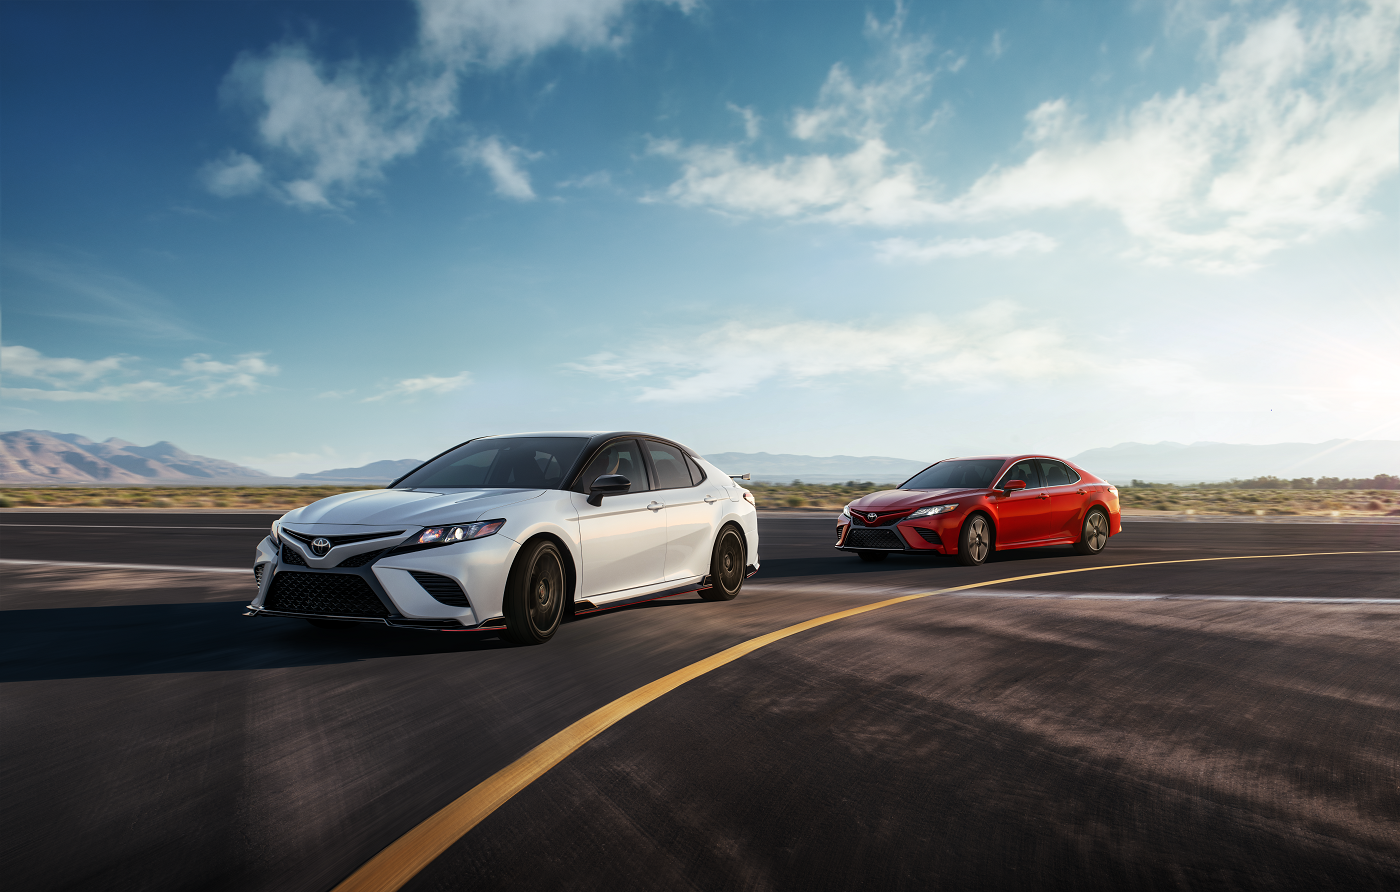 Toyota Camry Fuel Technology